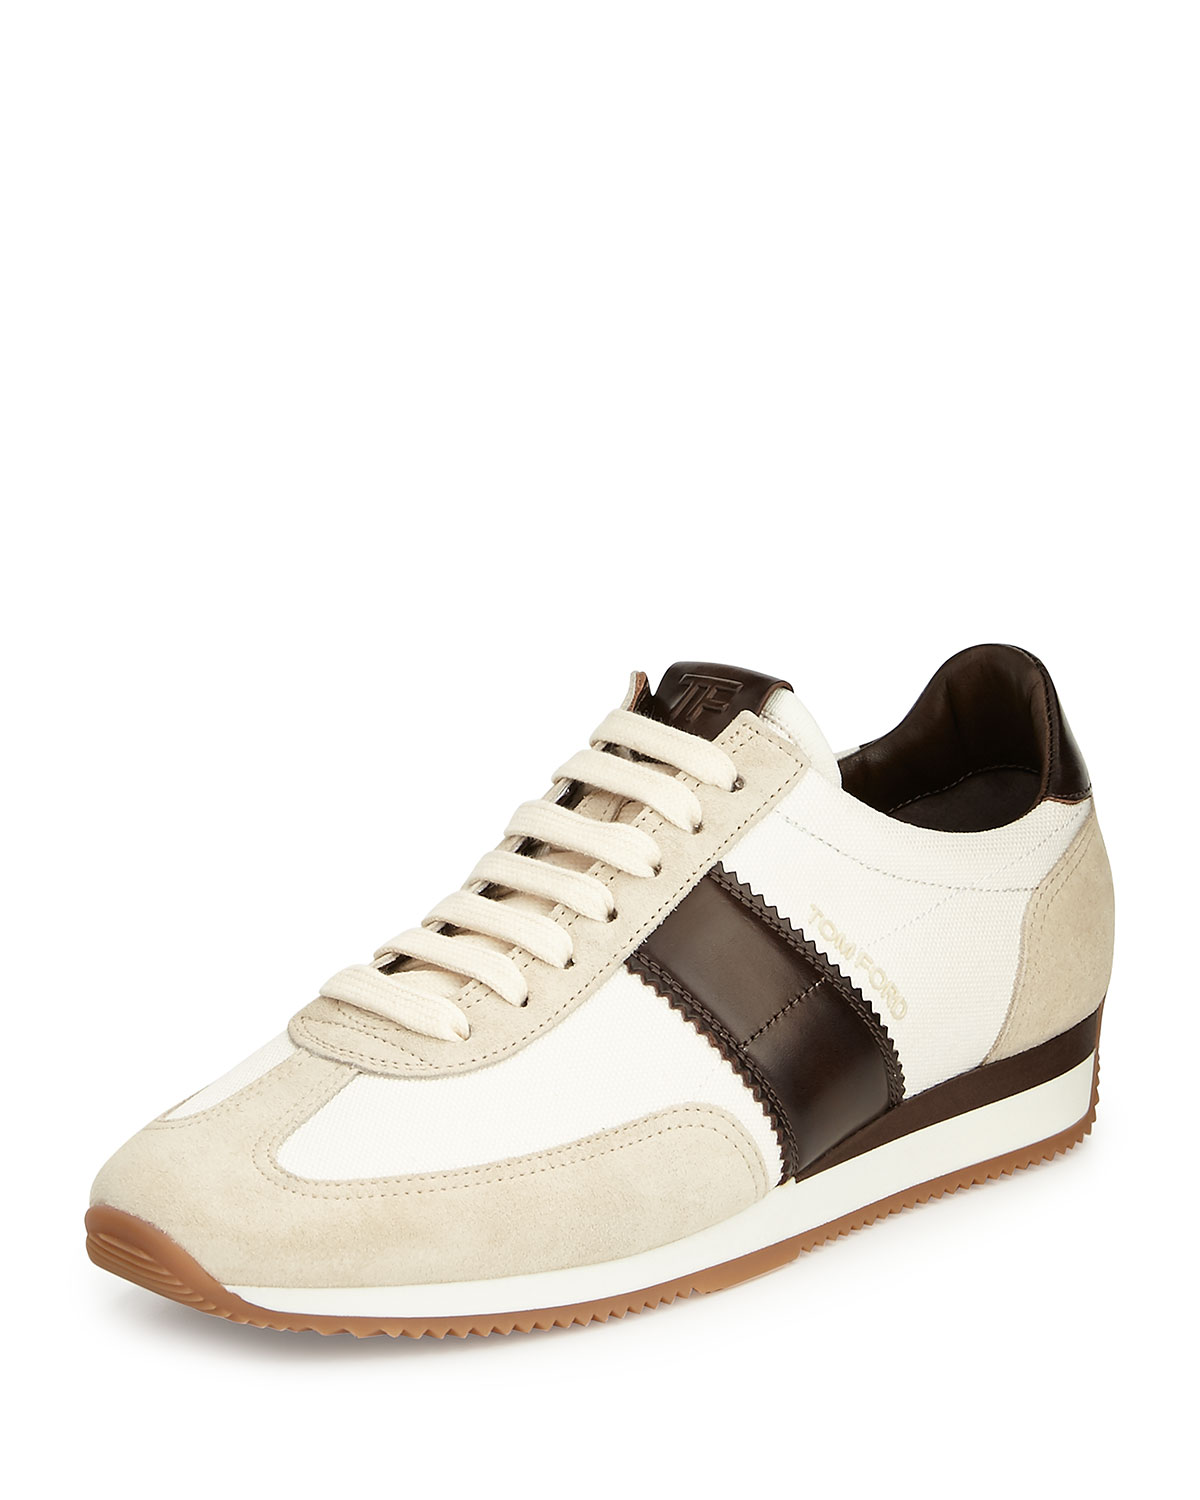 SneakerBrown Colorblock Trainer Colorblock Orford Orford 34jLRqAc5S